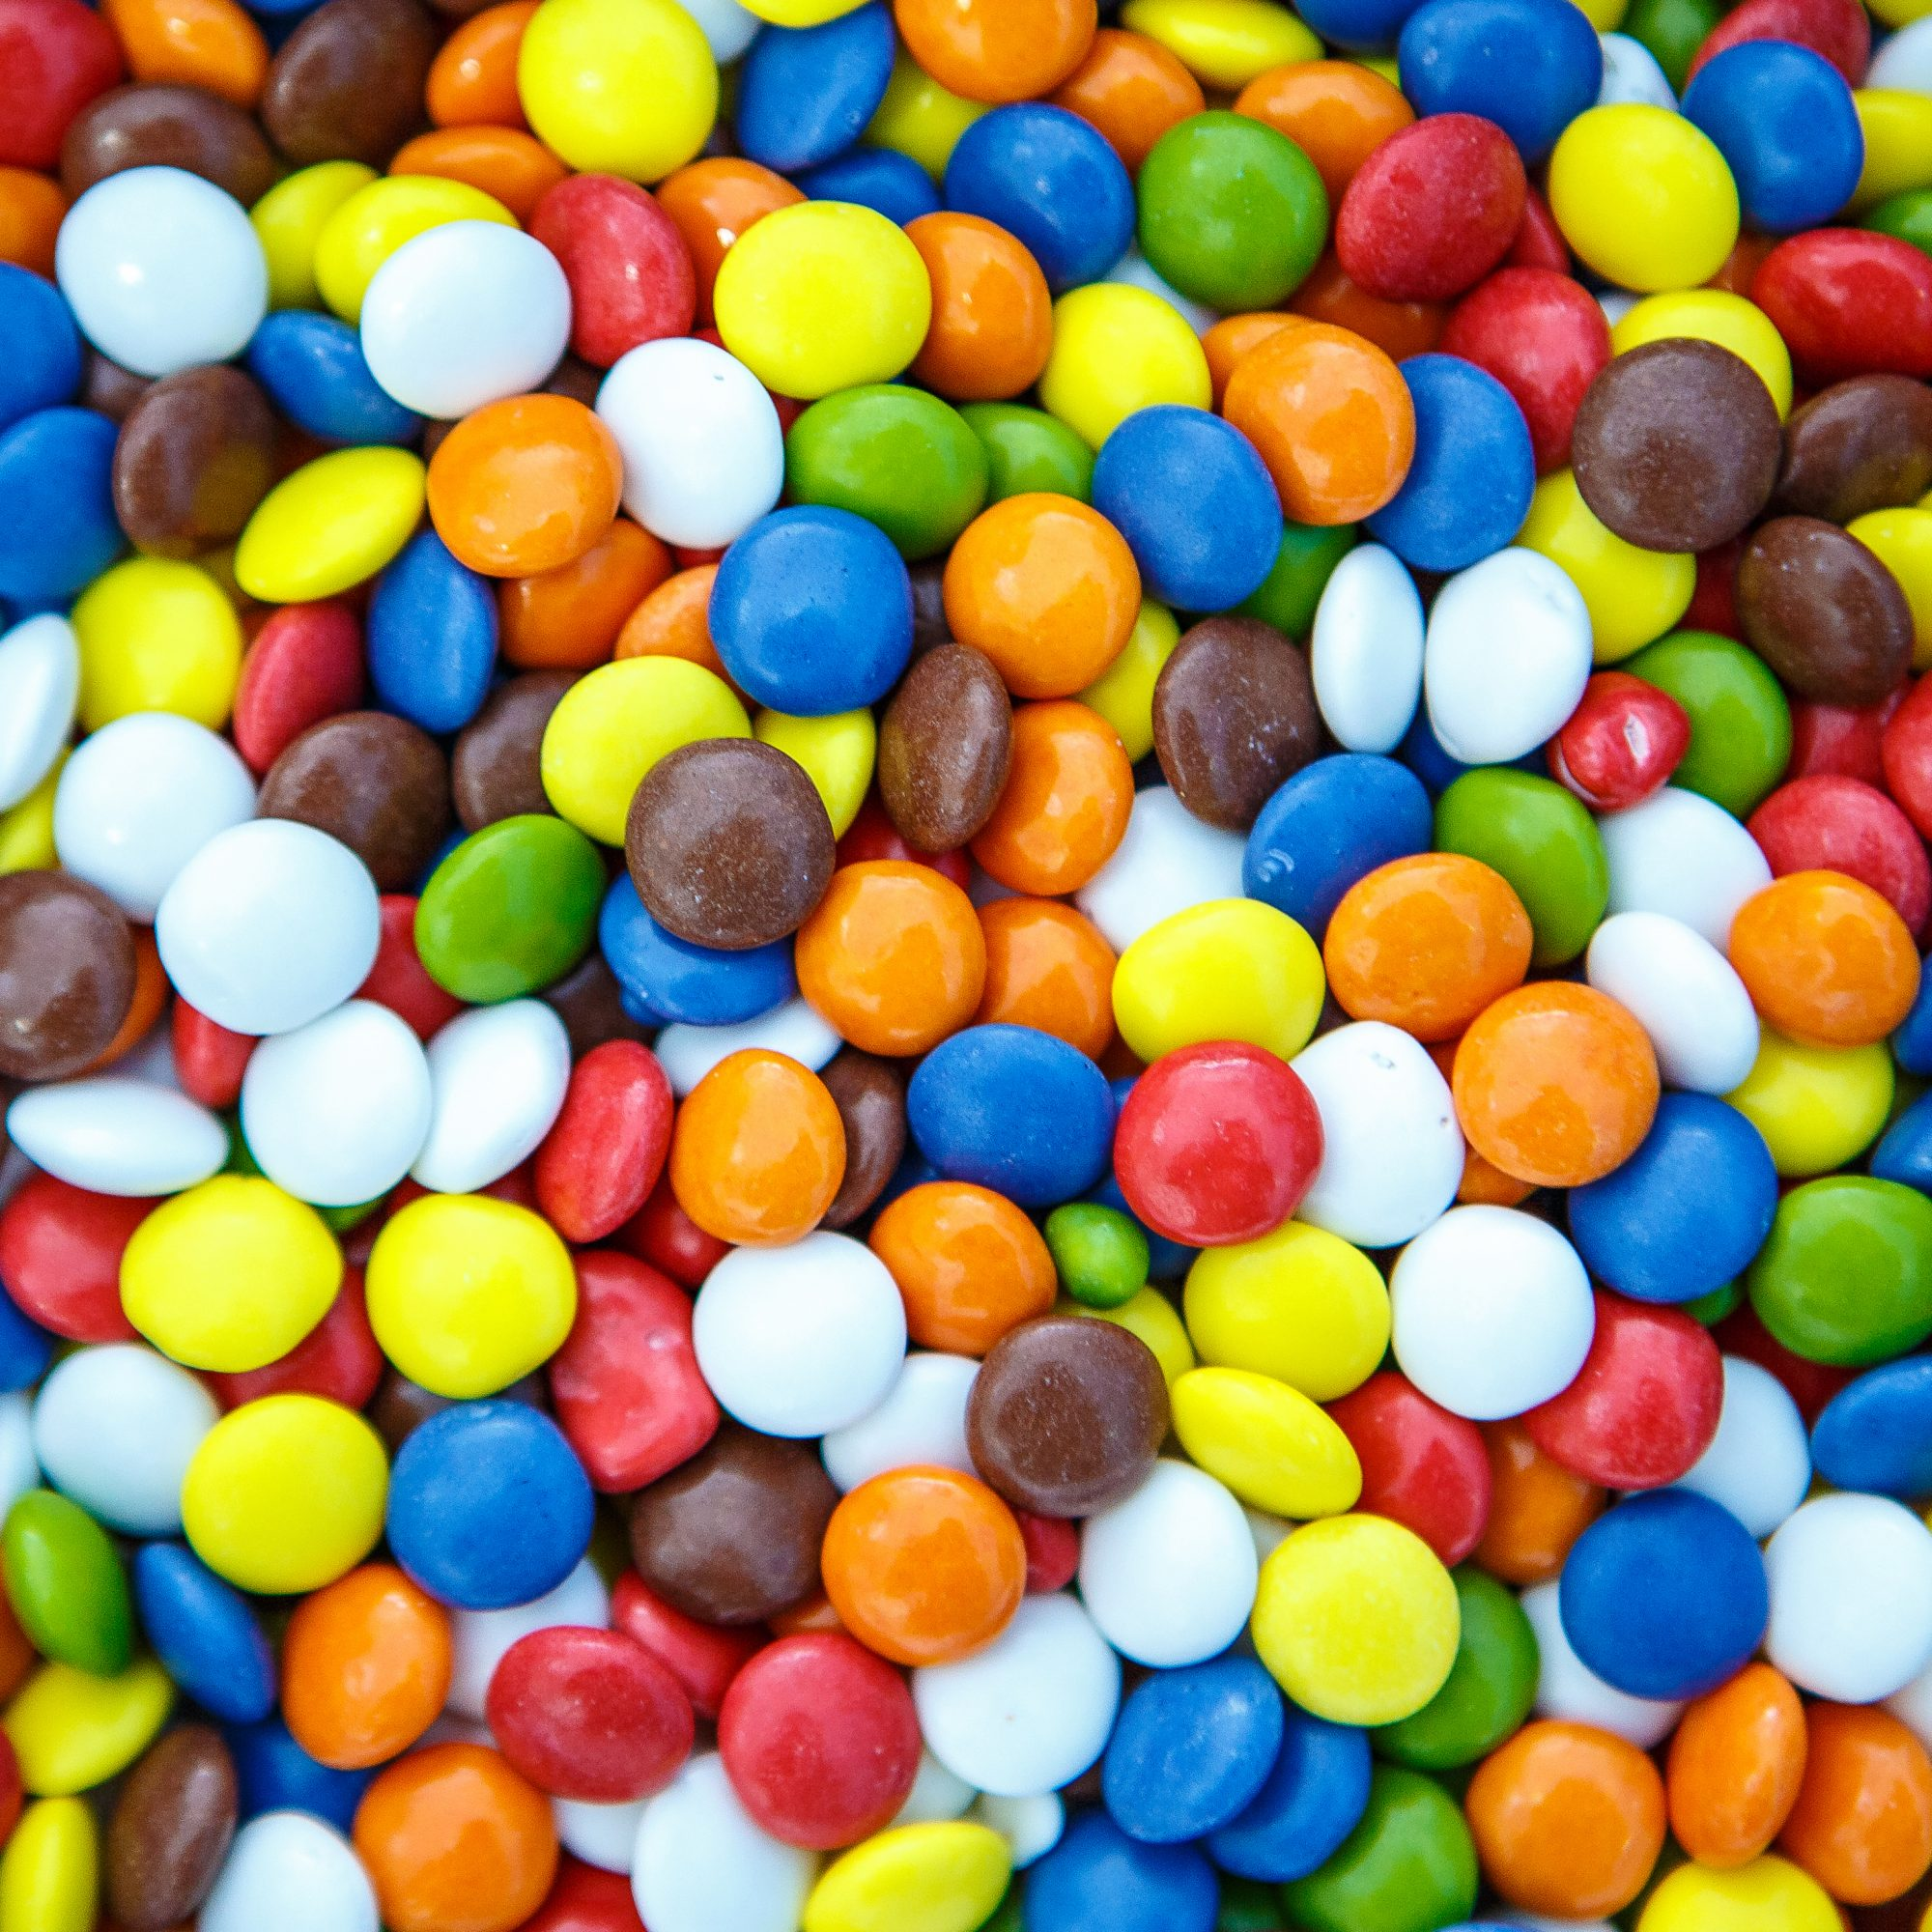 m-and-m-candy-fwx